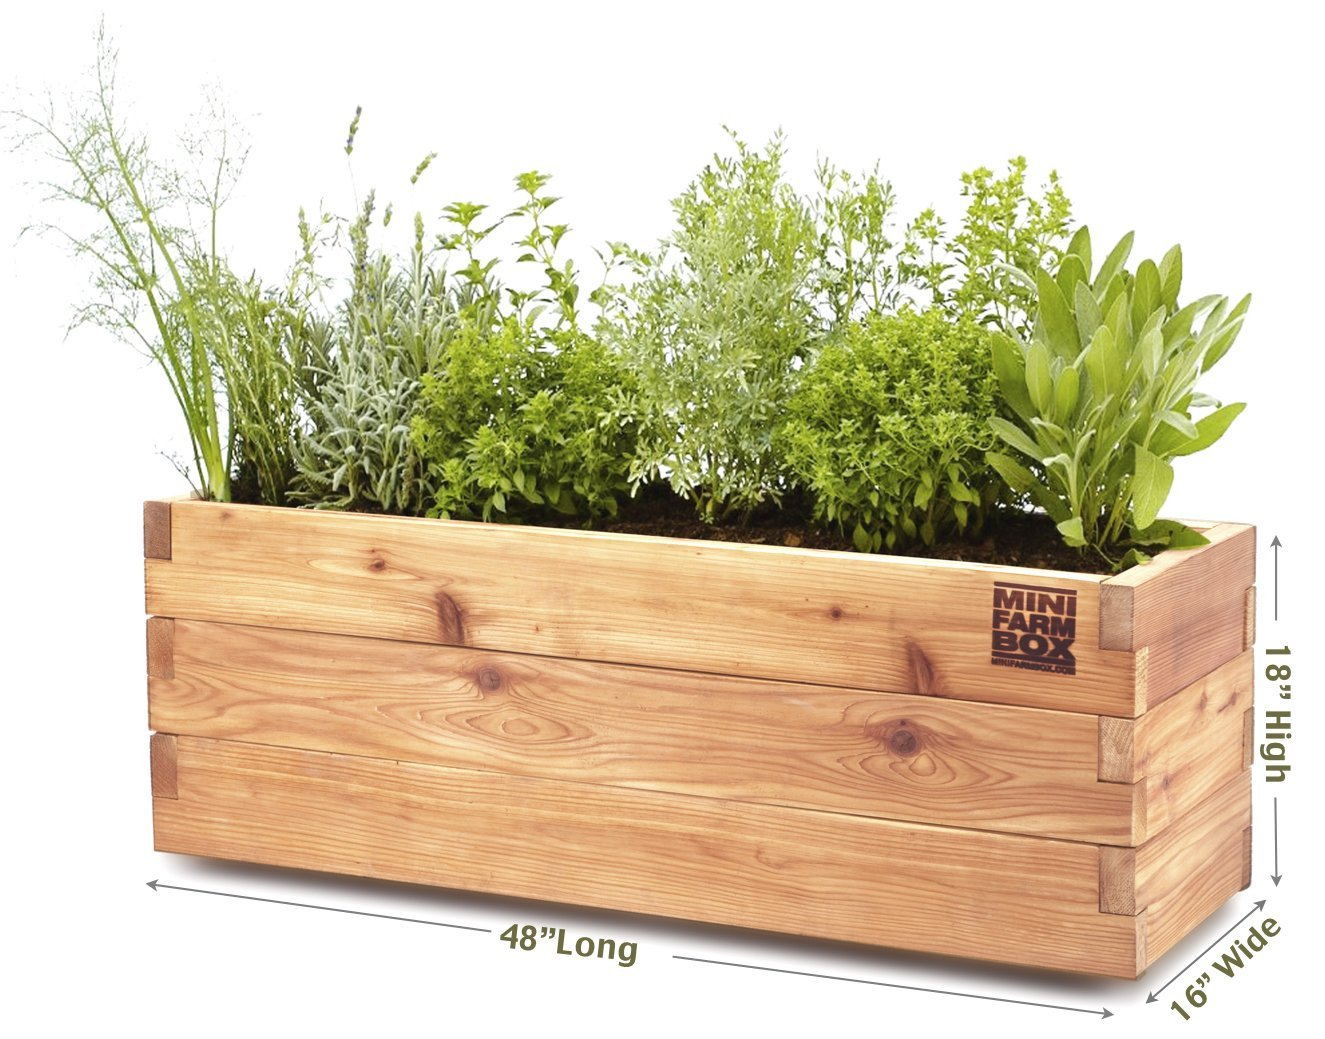 My New Garden Containers From EarthEasy.com and a HUGE Giveaway!